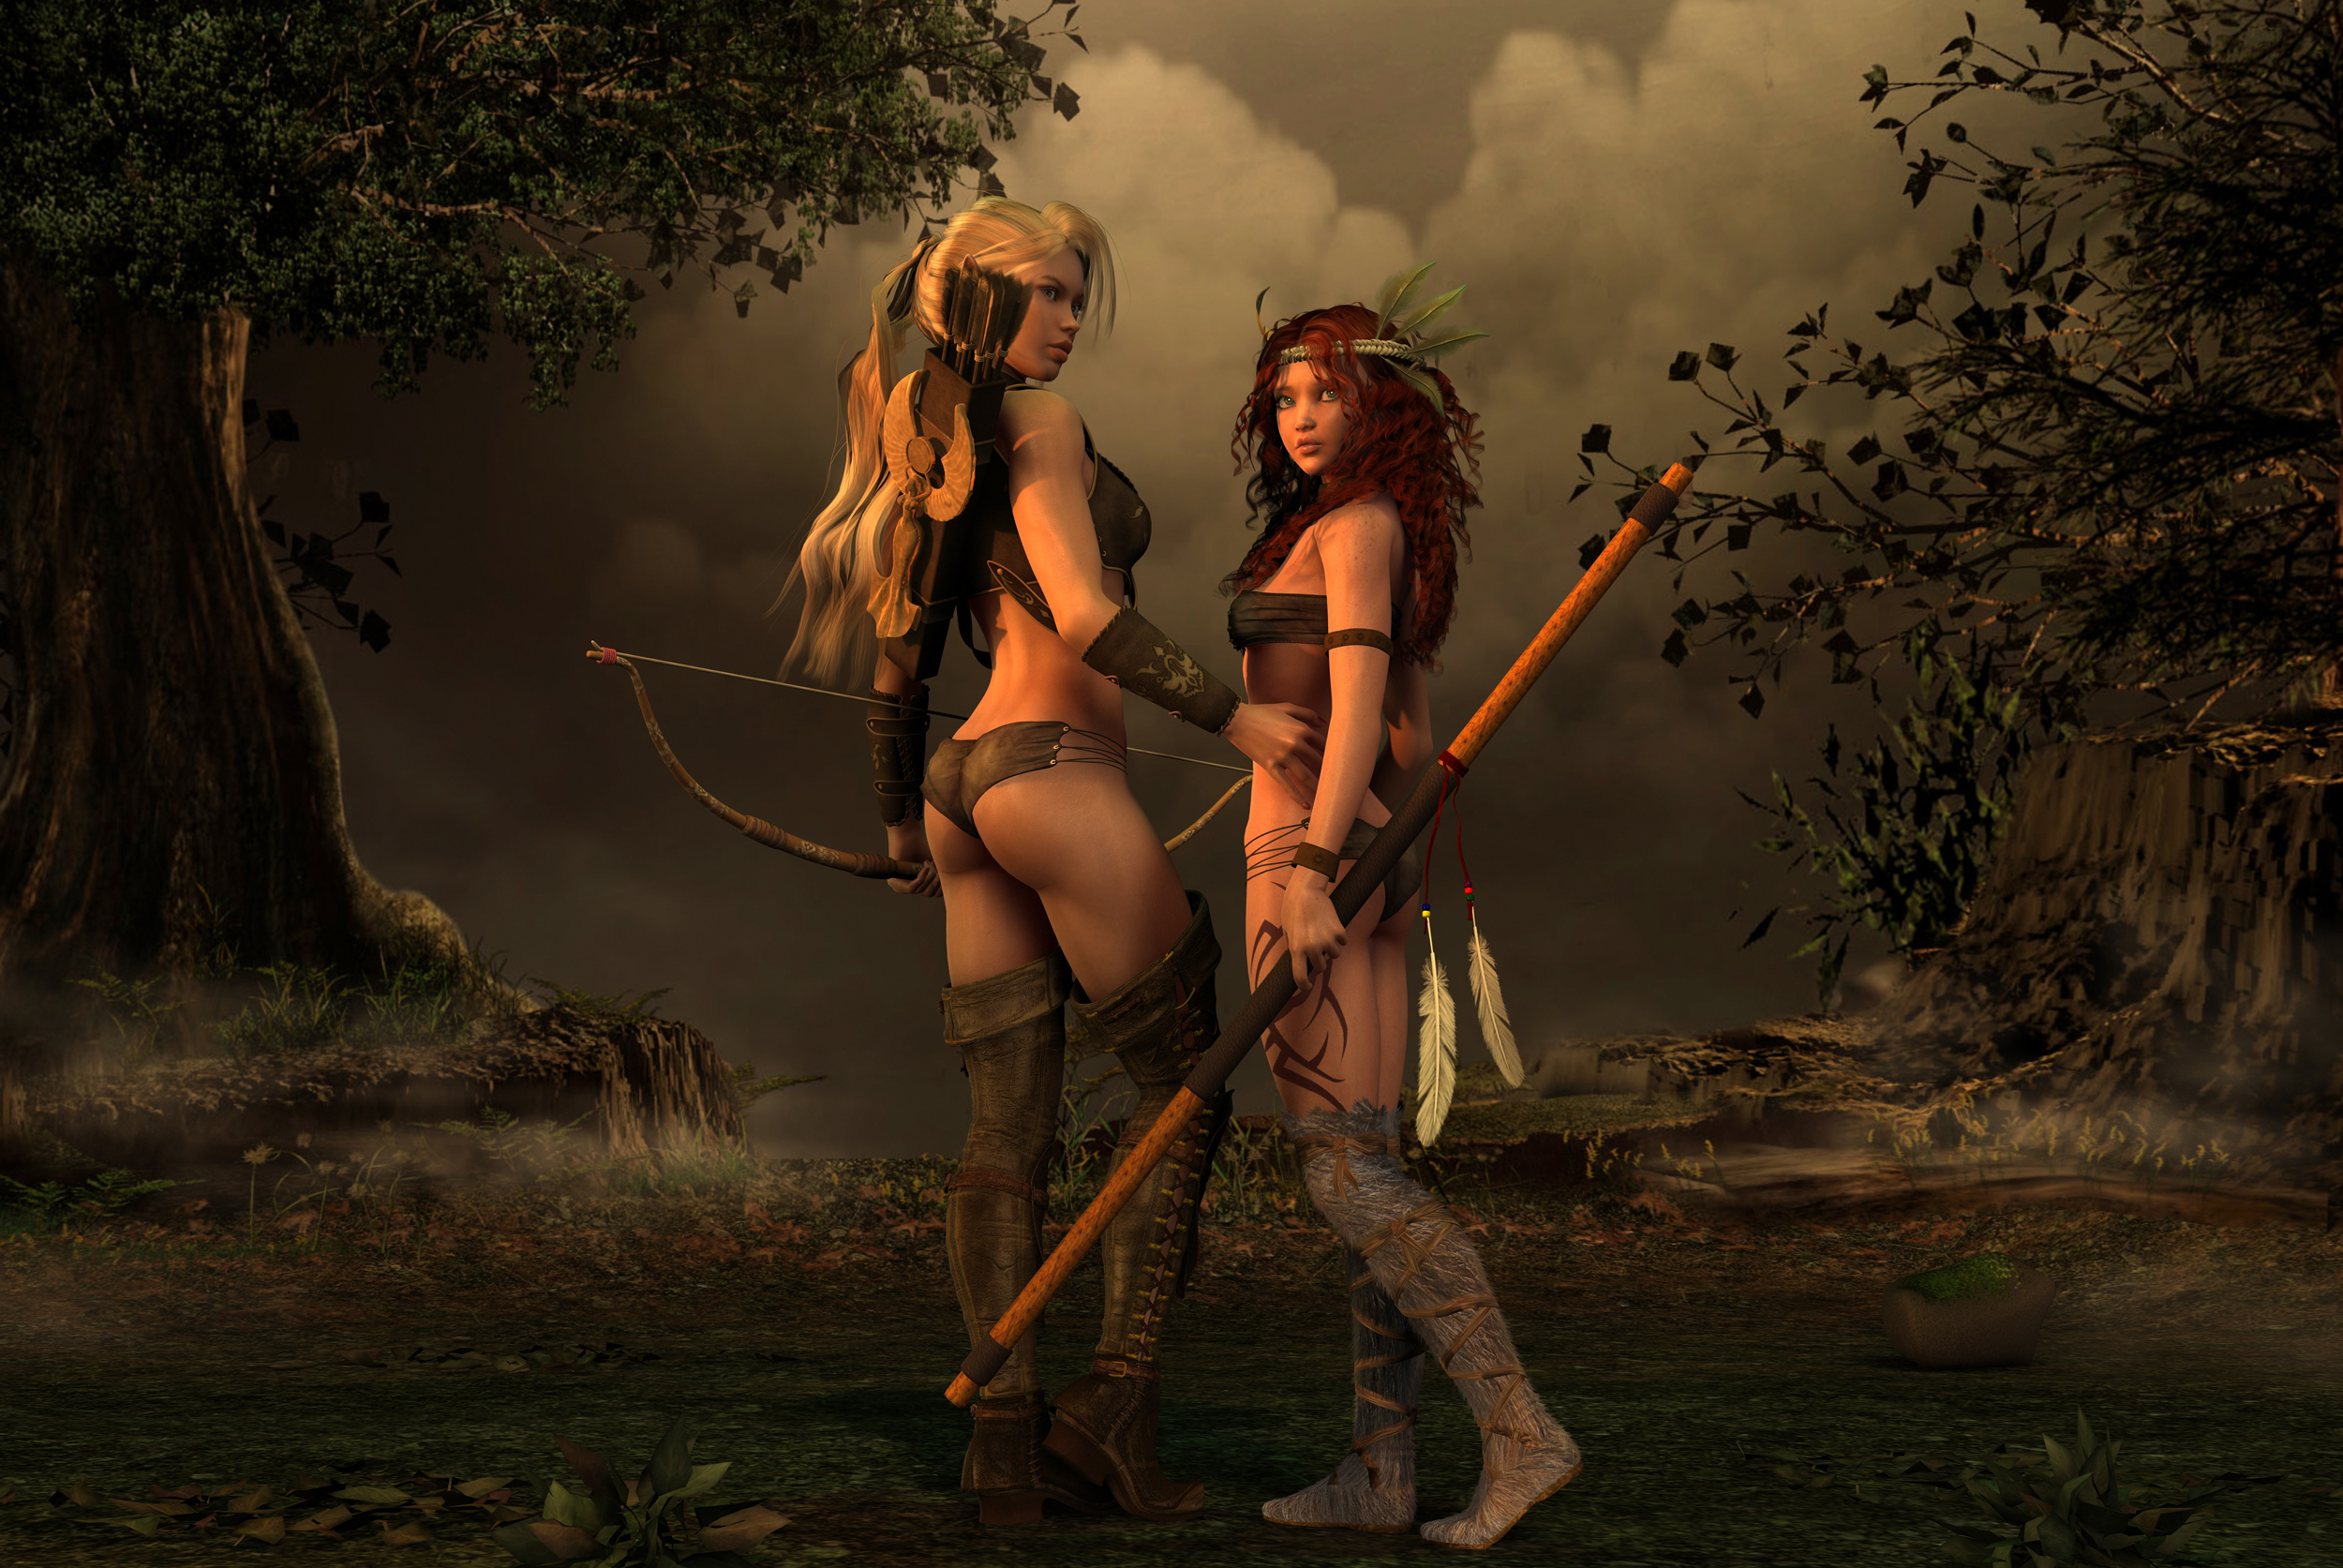 Minotaur and elf nude pornos comics